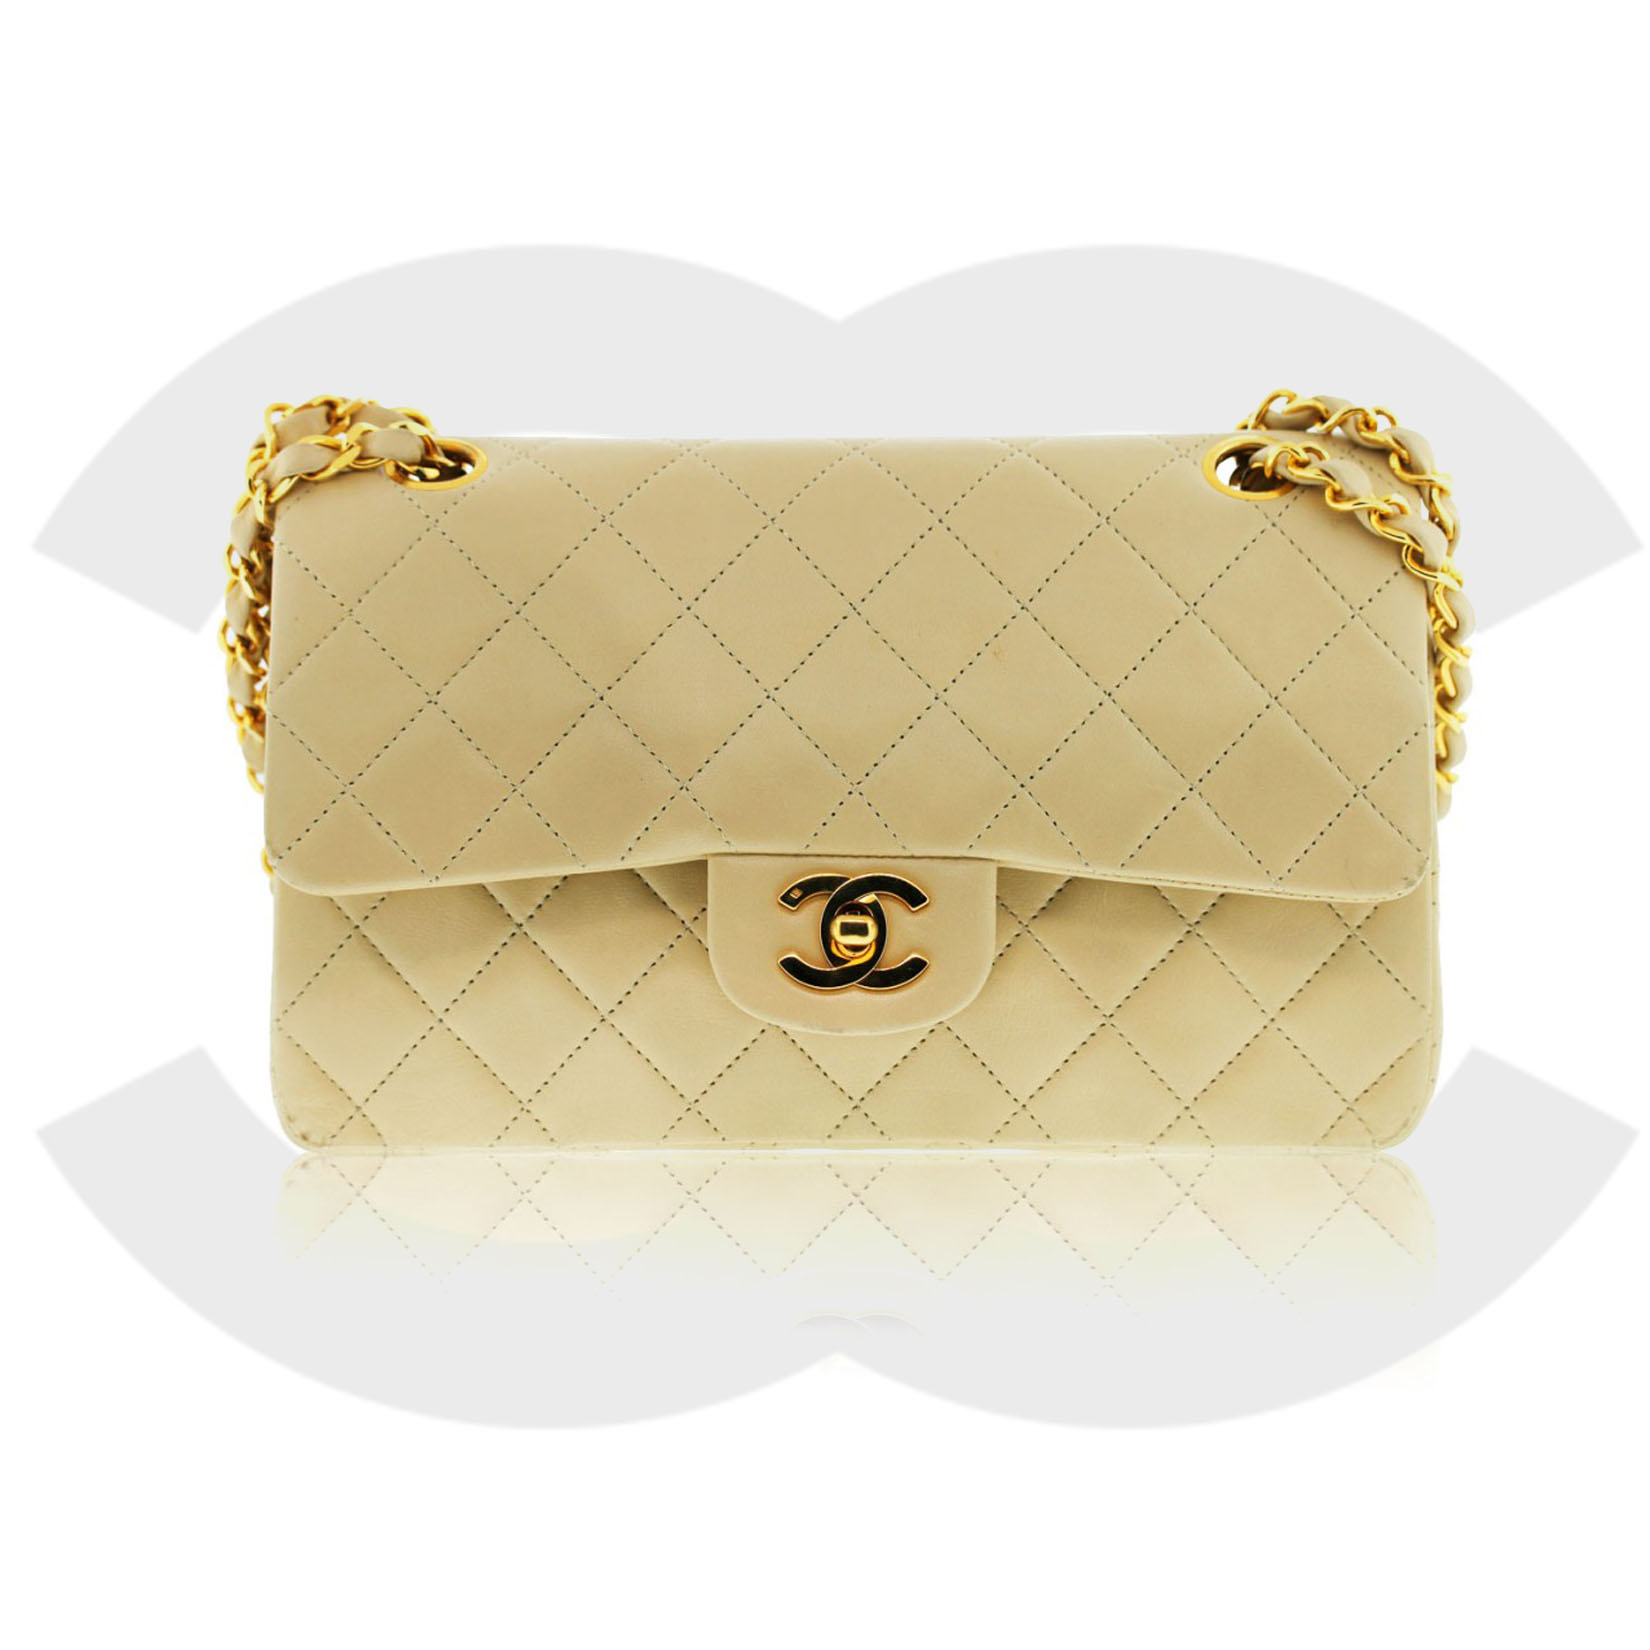 Chanel Beige Vintage Double Flap Shoulder bag